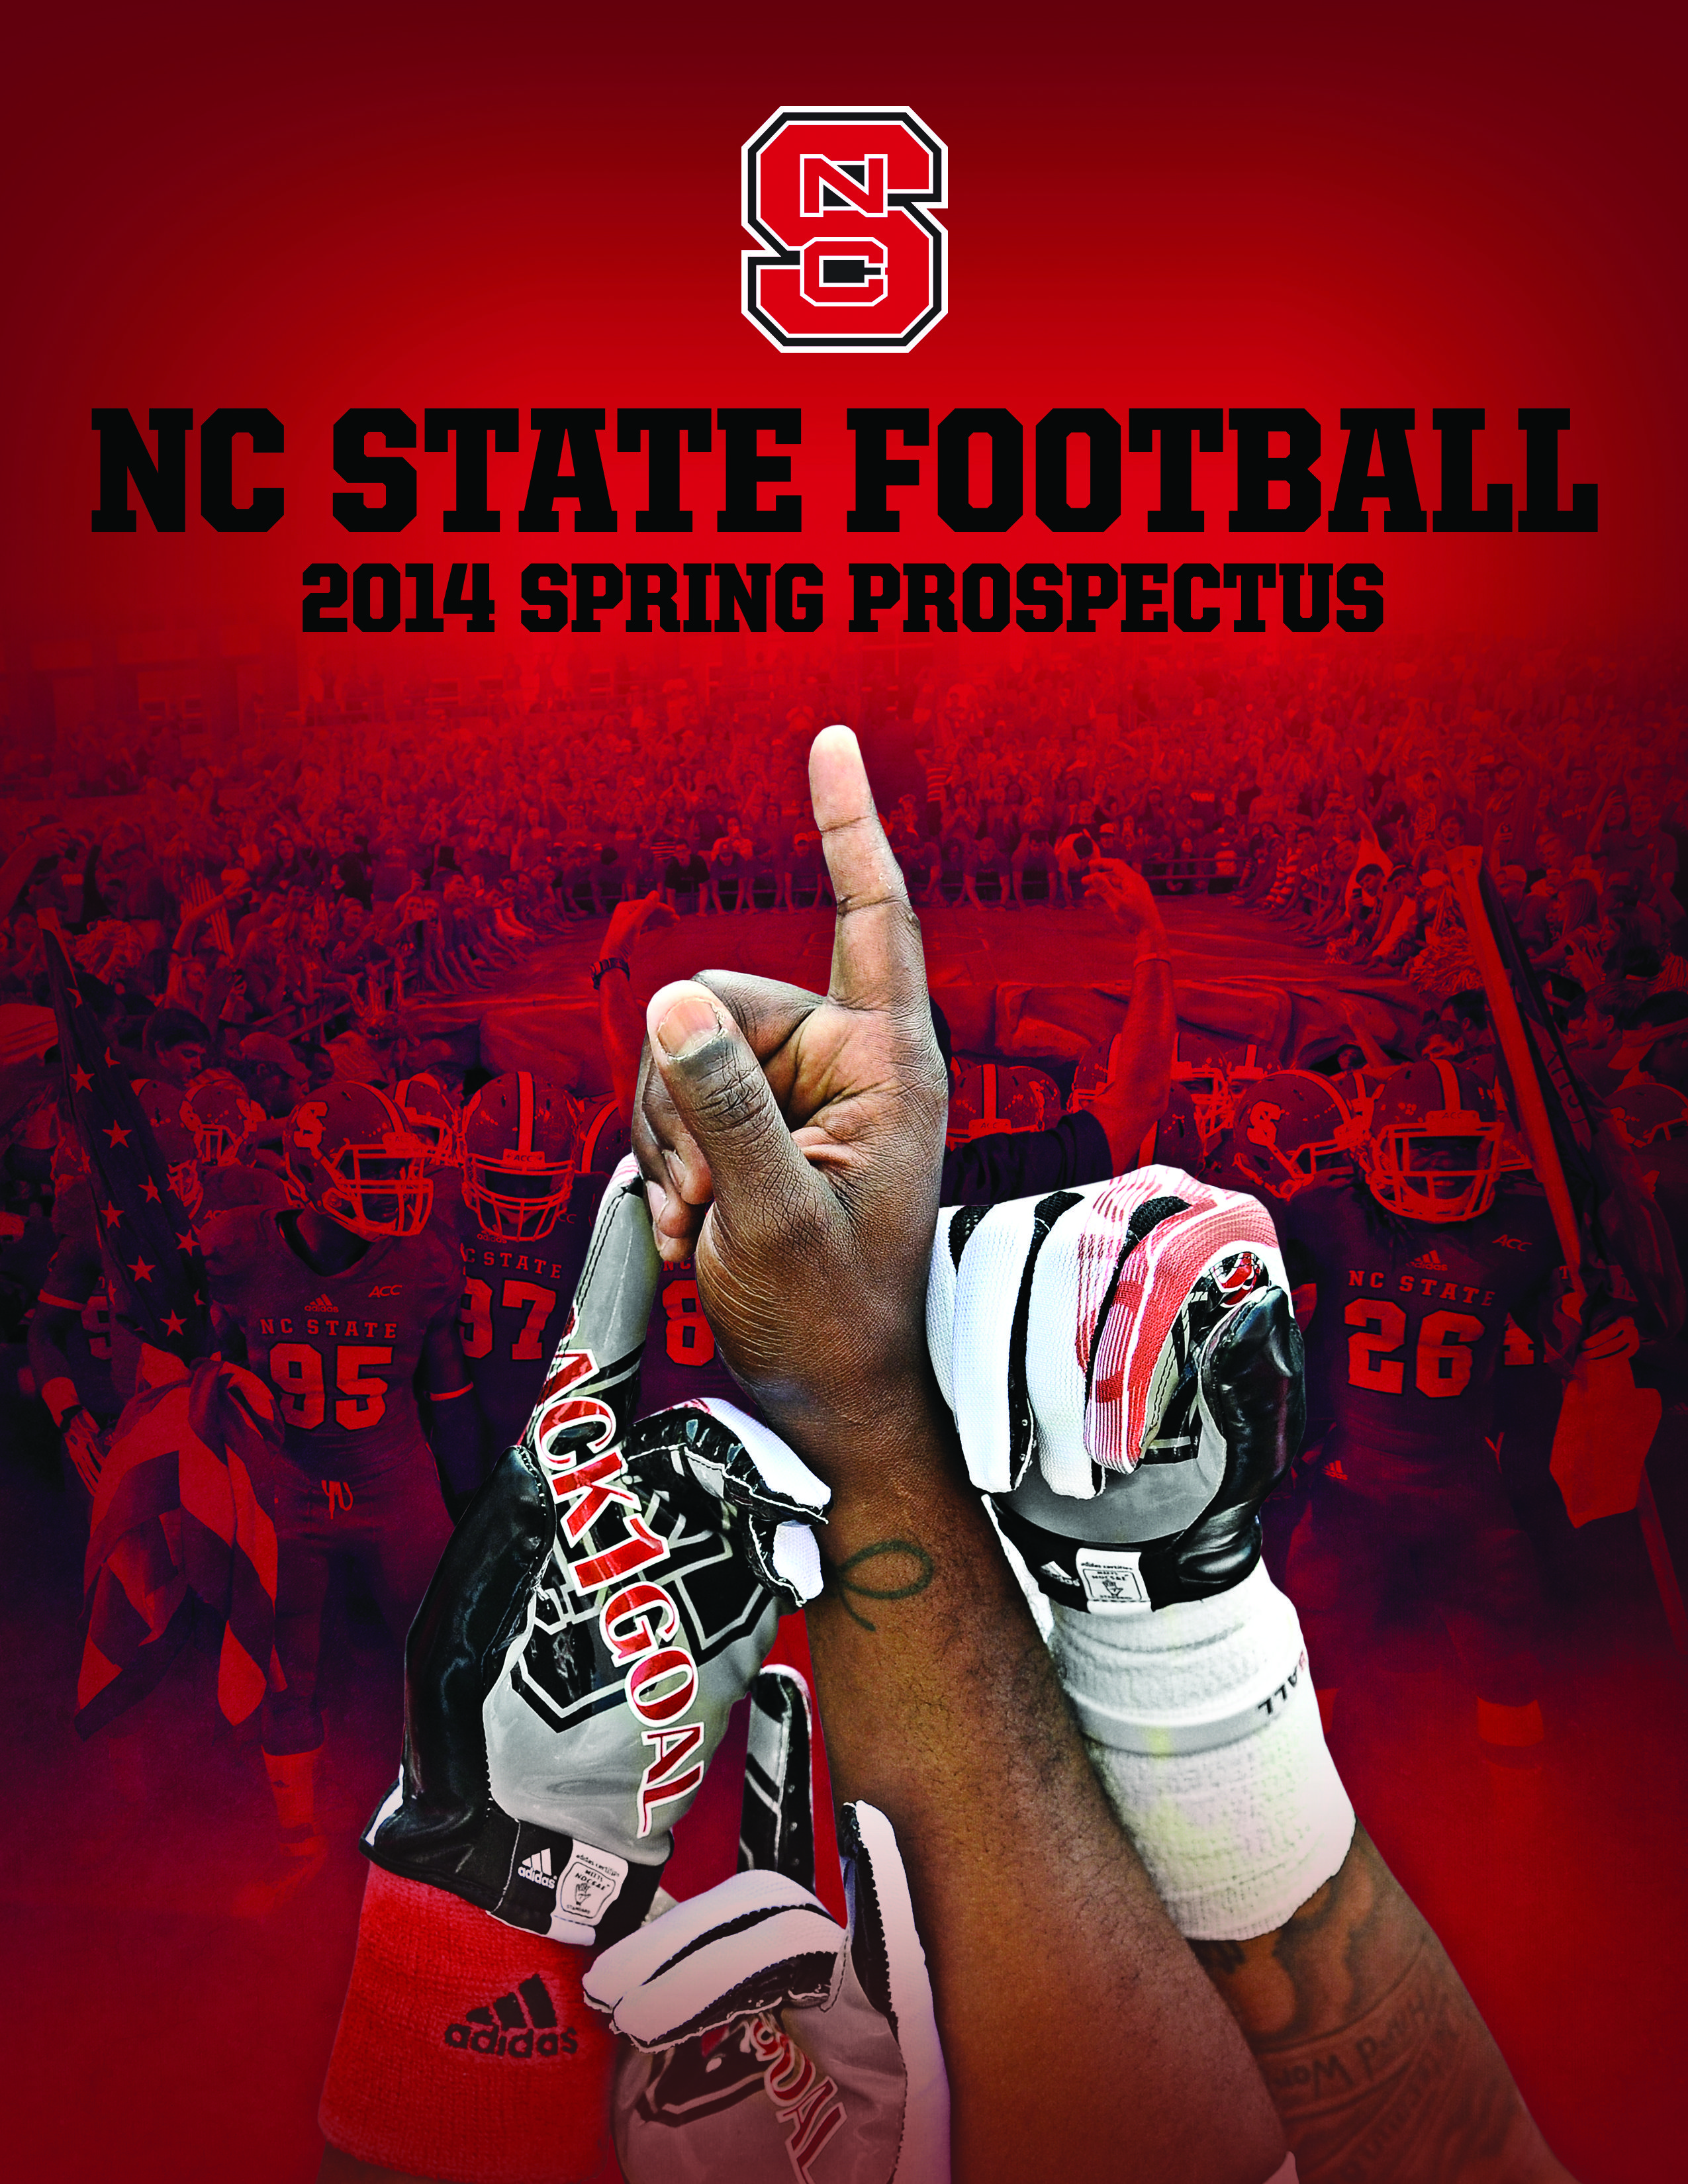 Pin By Nc State Athletics Design On Nc State Athletics Nc State Football Nc State Nc State Wolfpack